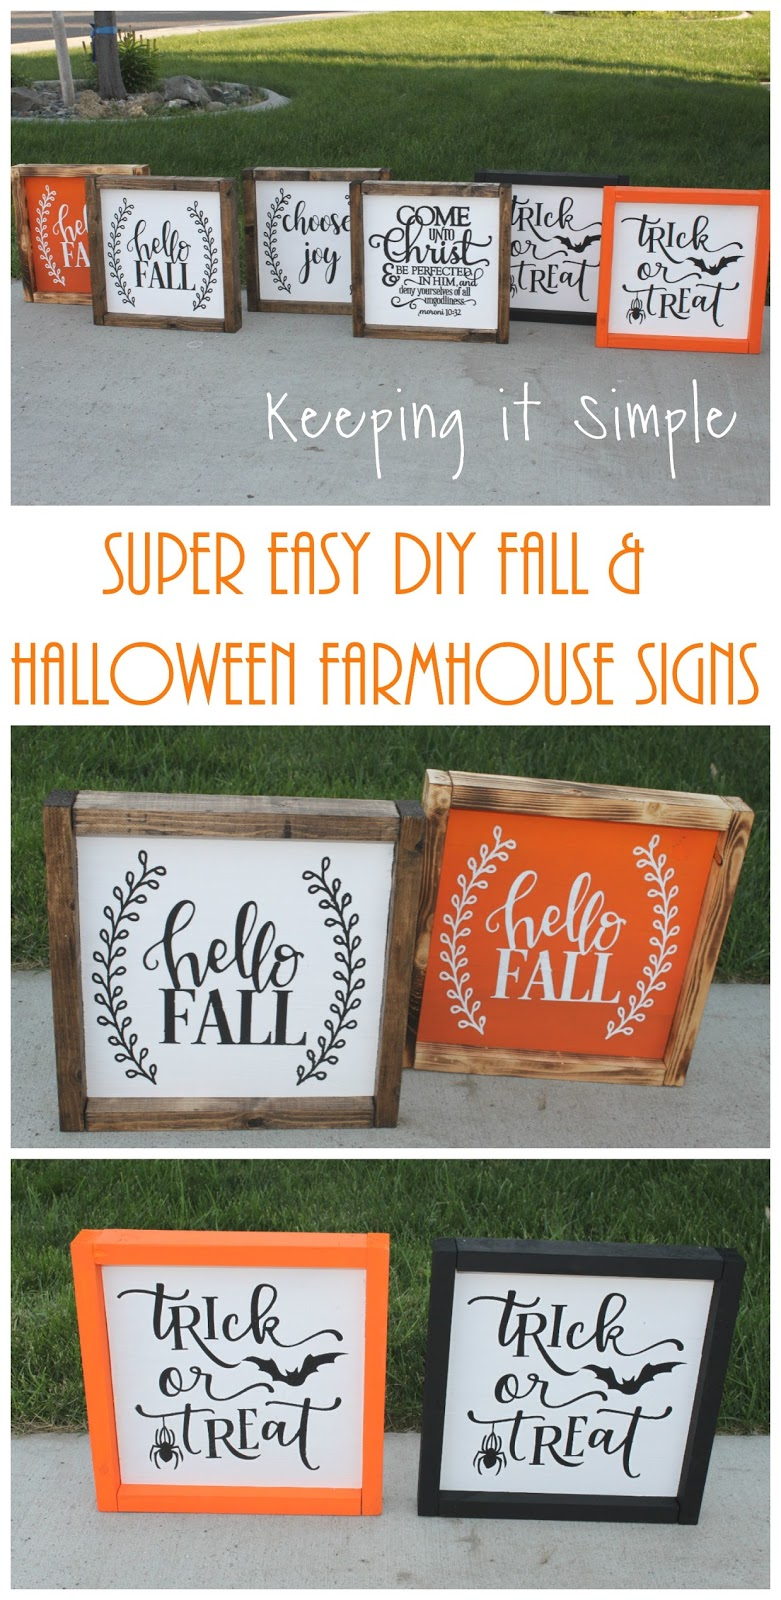 Super Easy Diy Dish Soap 3 Ingredients: Super Easy DIY Fall And Halloween Farmhouse Signs